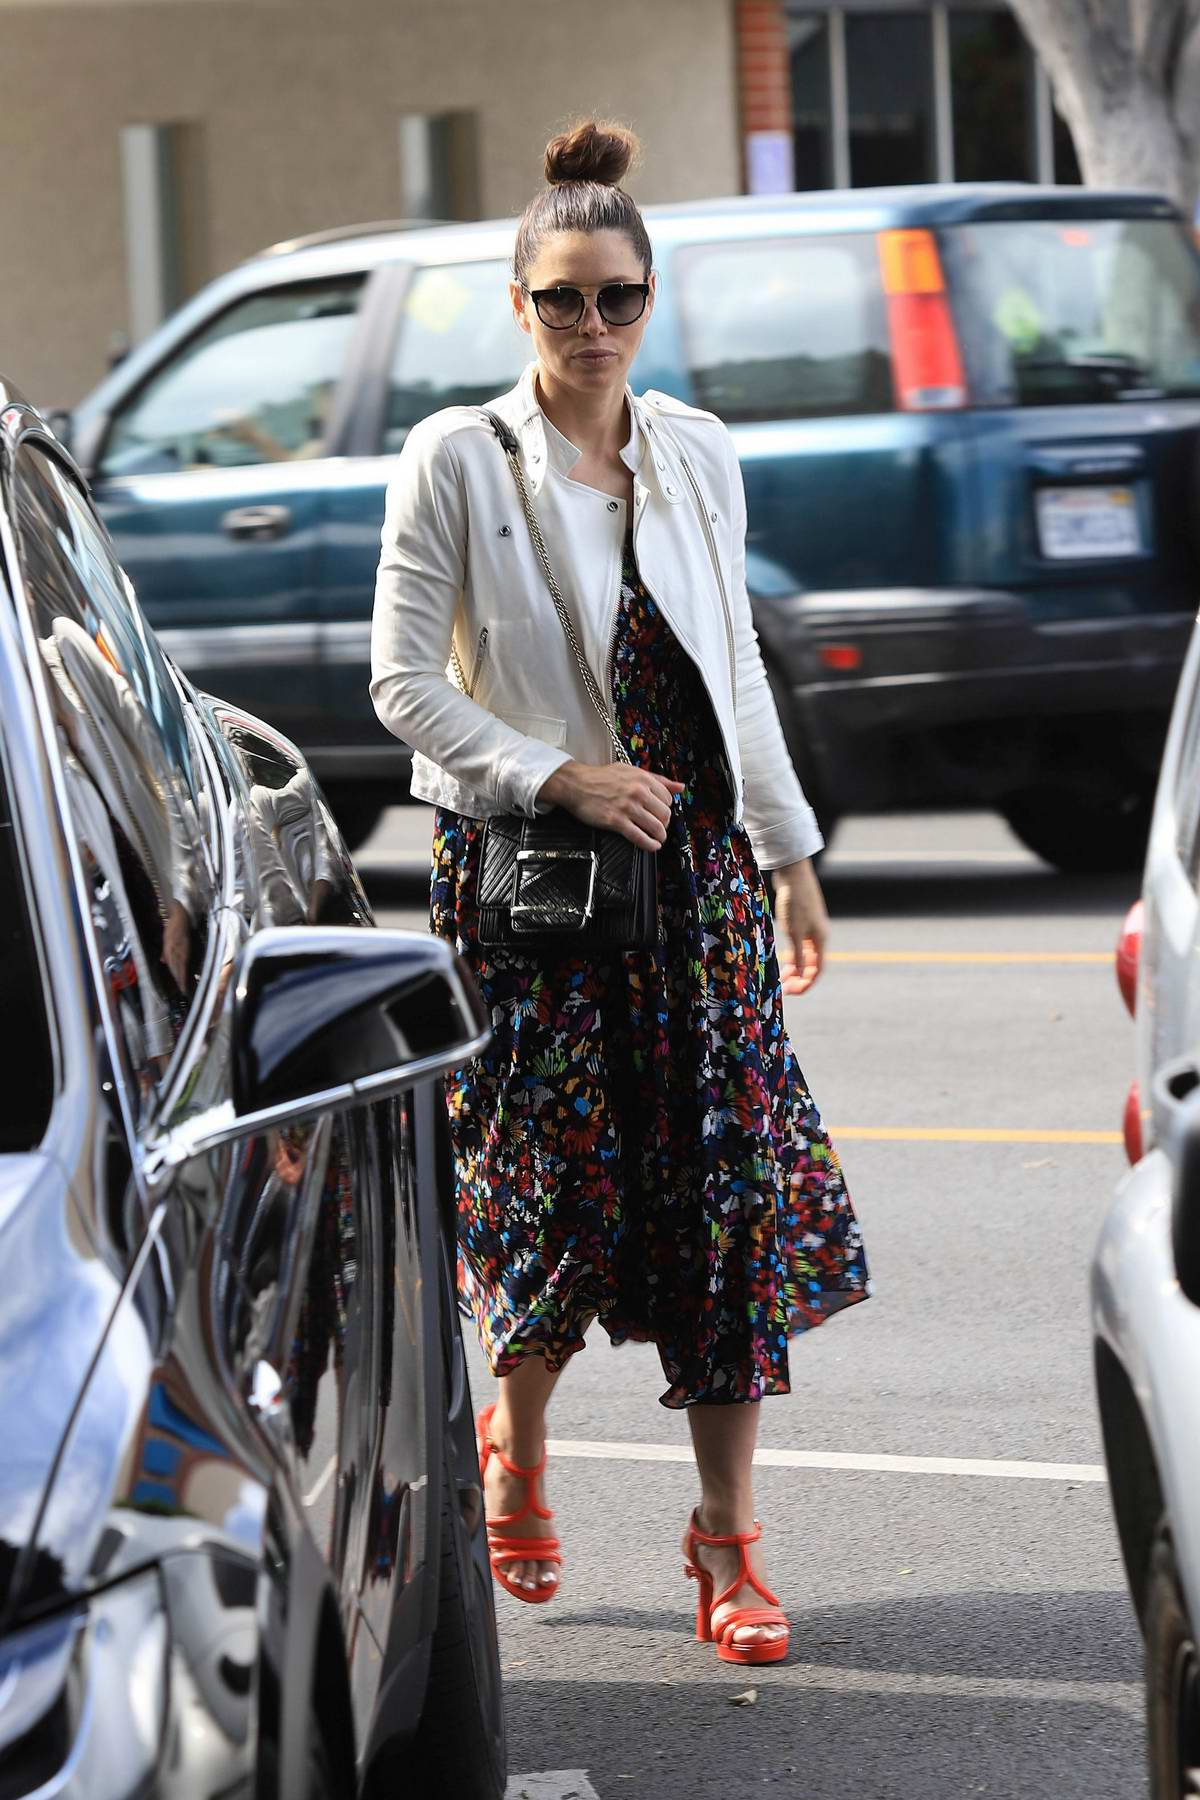 Jessica Biel wears a floral print dress and white jacket for a lunch outing in in Los Angeles